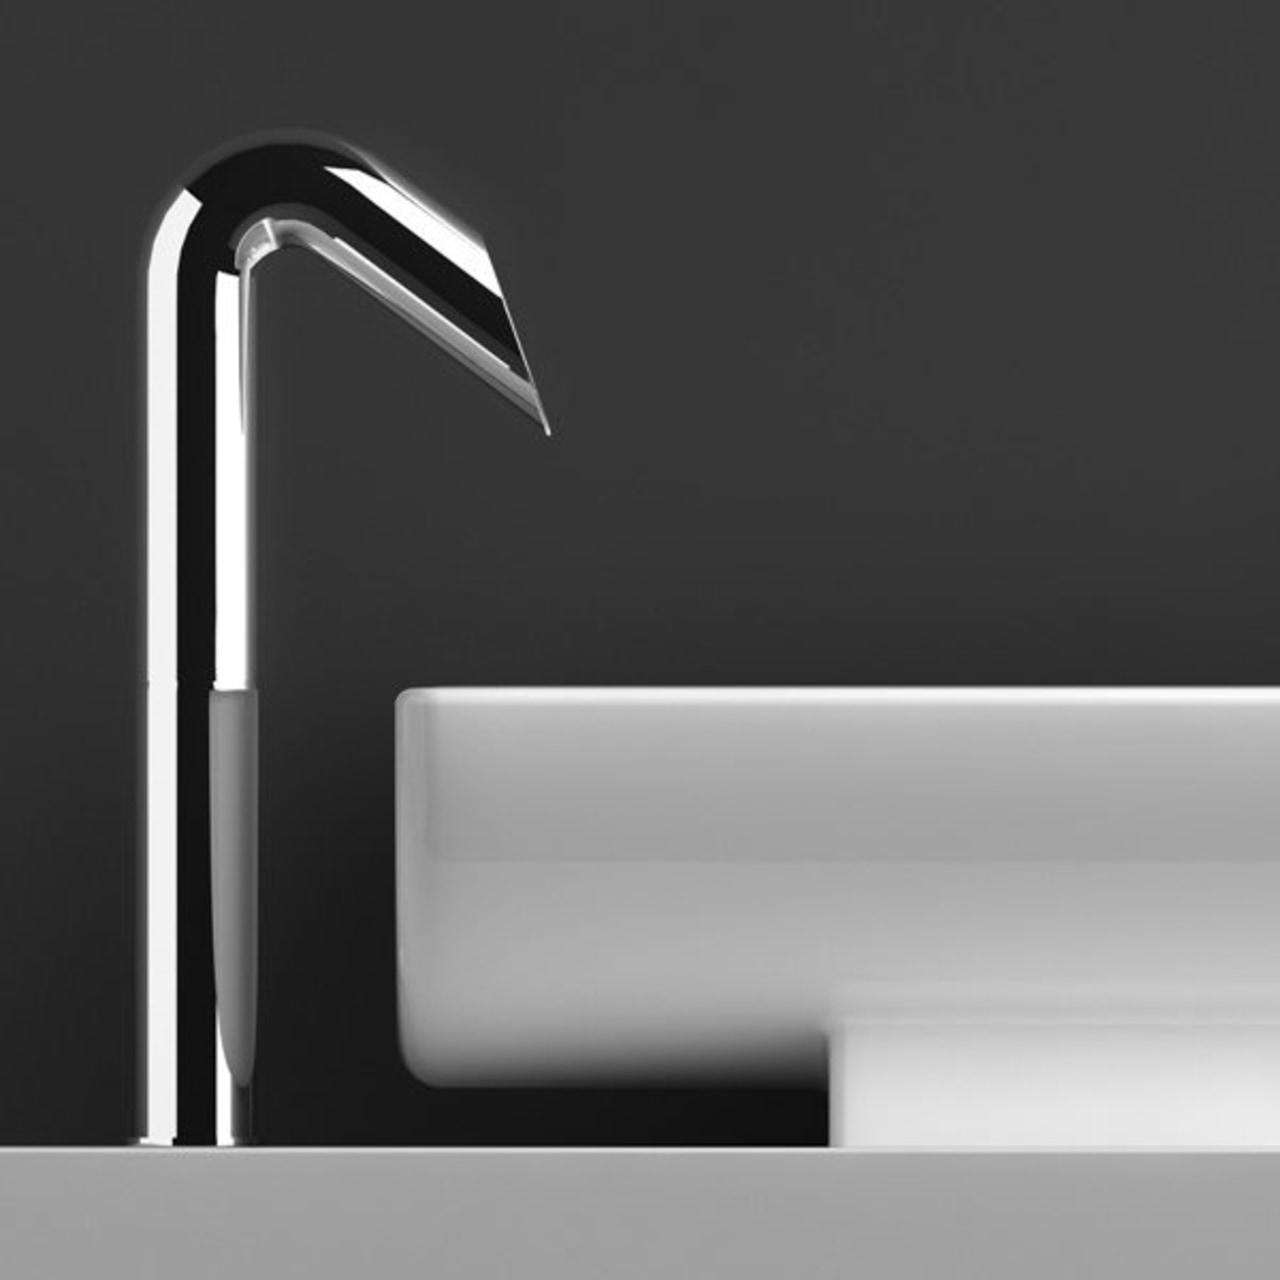 Sleek lines and highly polished chrome finish characterise black and white, font, light, lighting, monochrome, product, product design, tap, black, gray